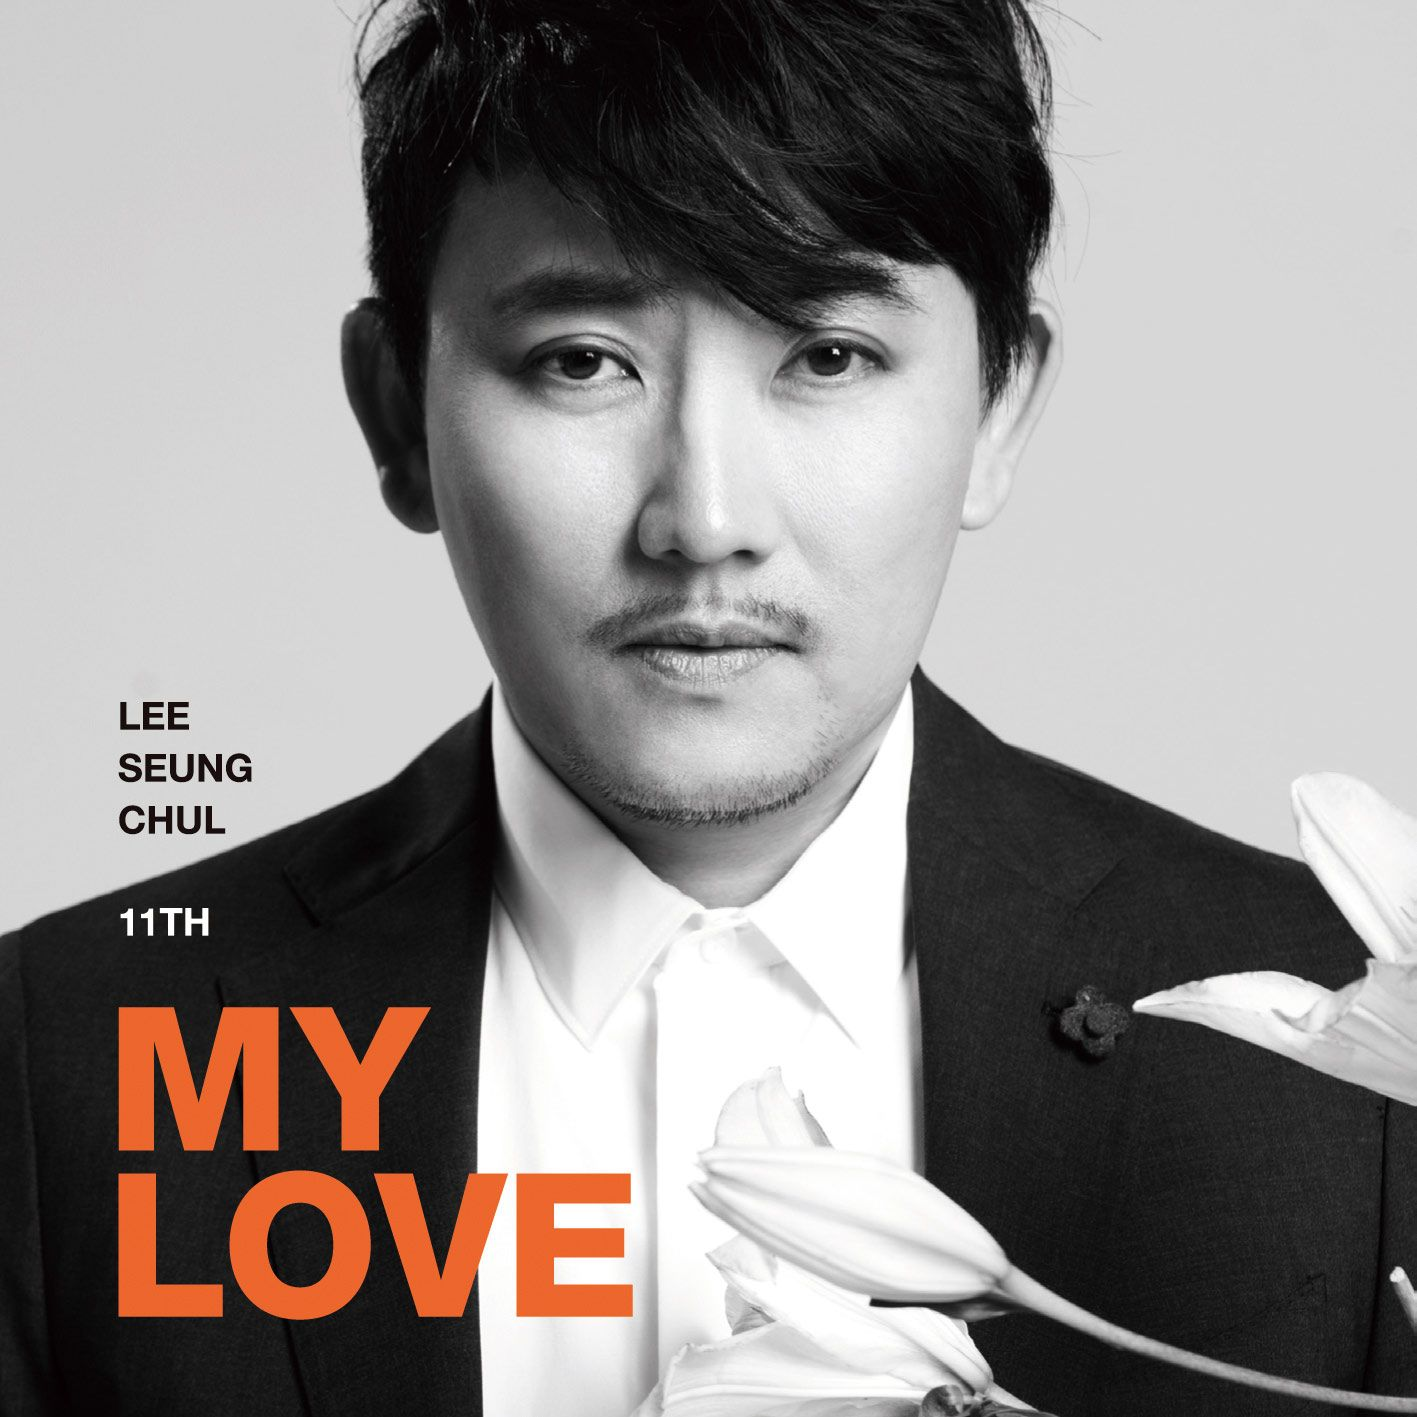 [Album] Lee Seung Chul - MY LOVE [VOL.11]